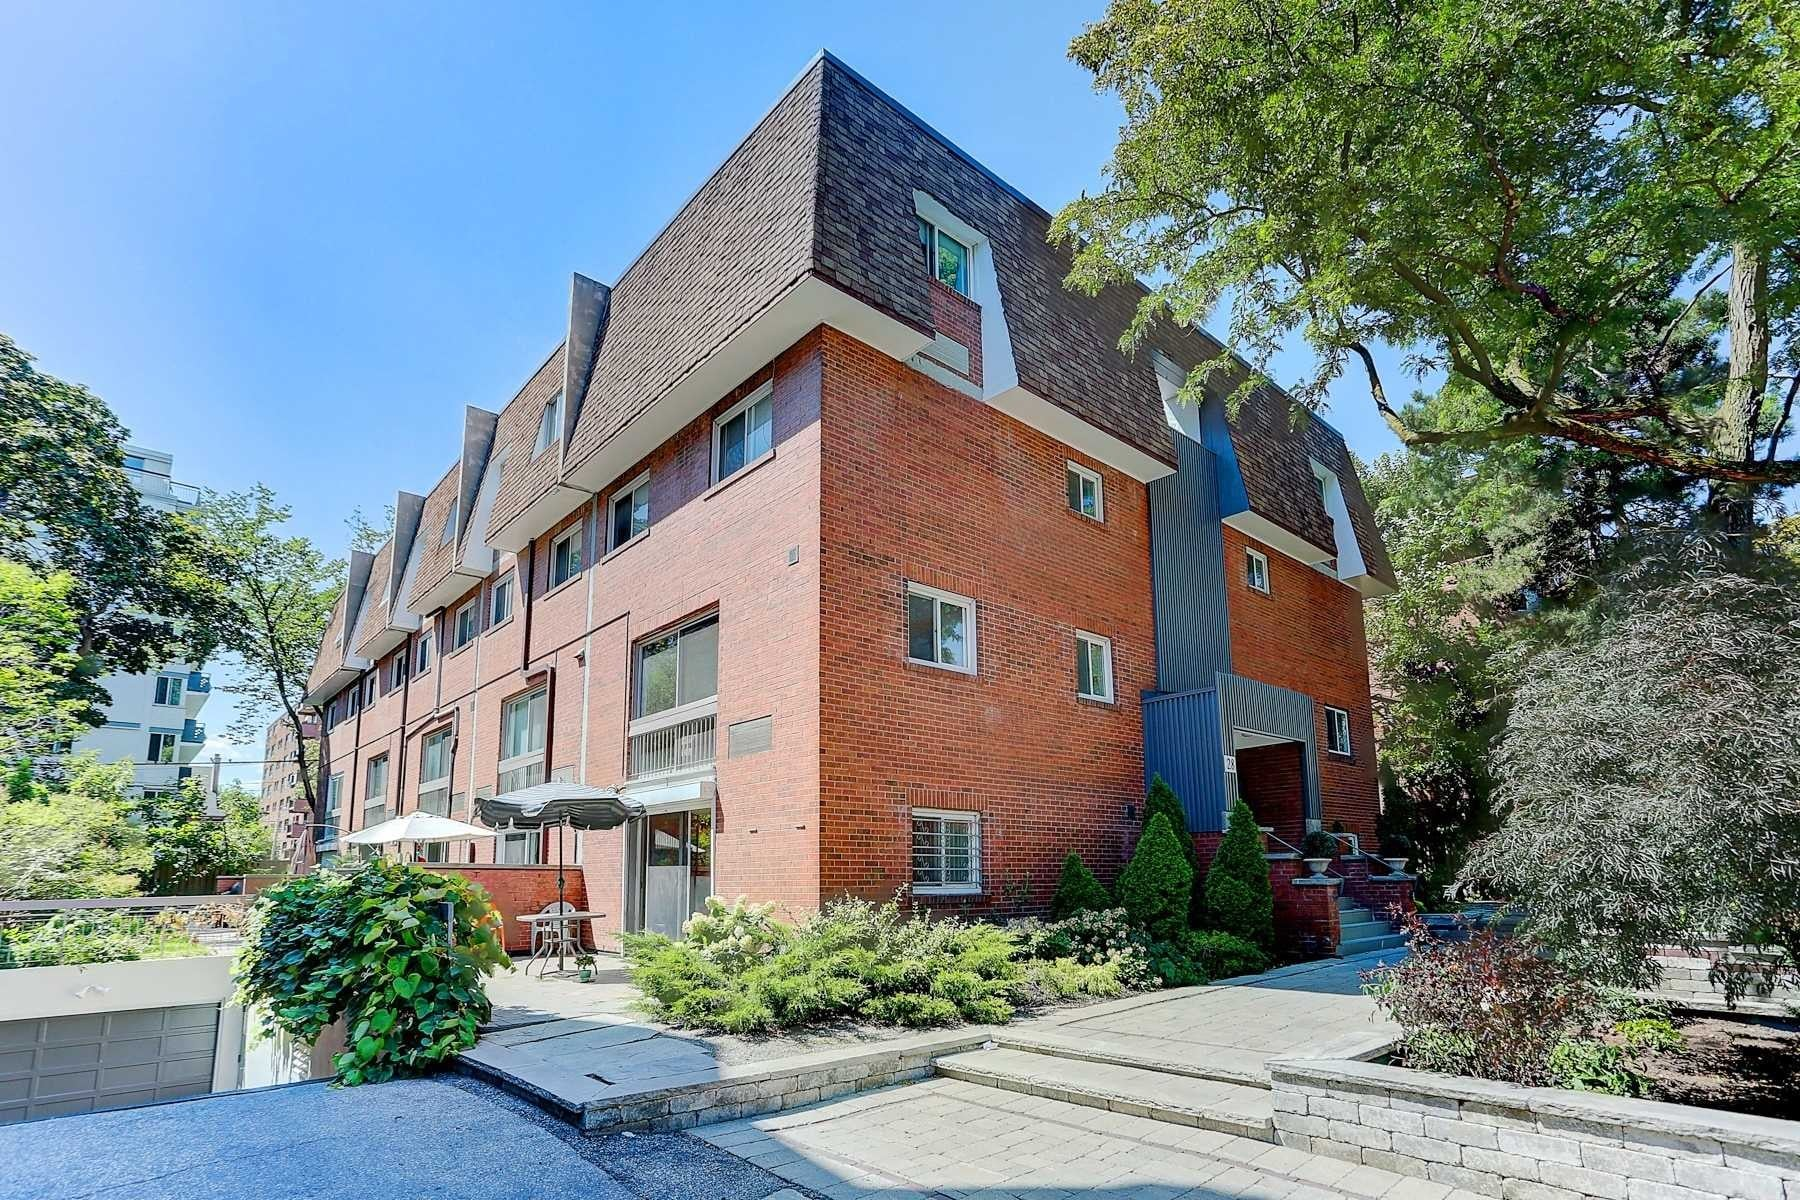 Buliding: 28 Admiral Road, Toronto, ON